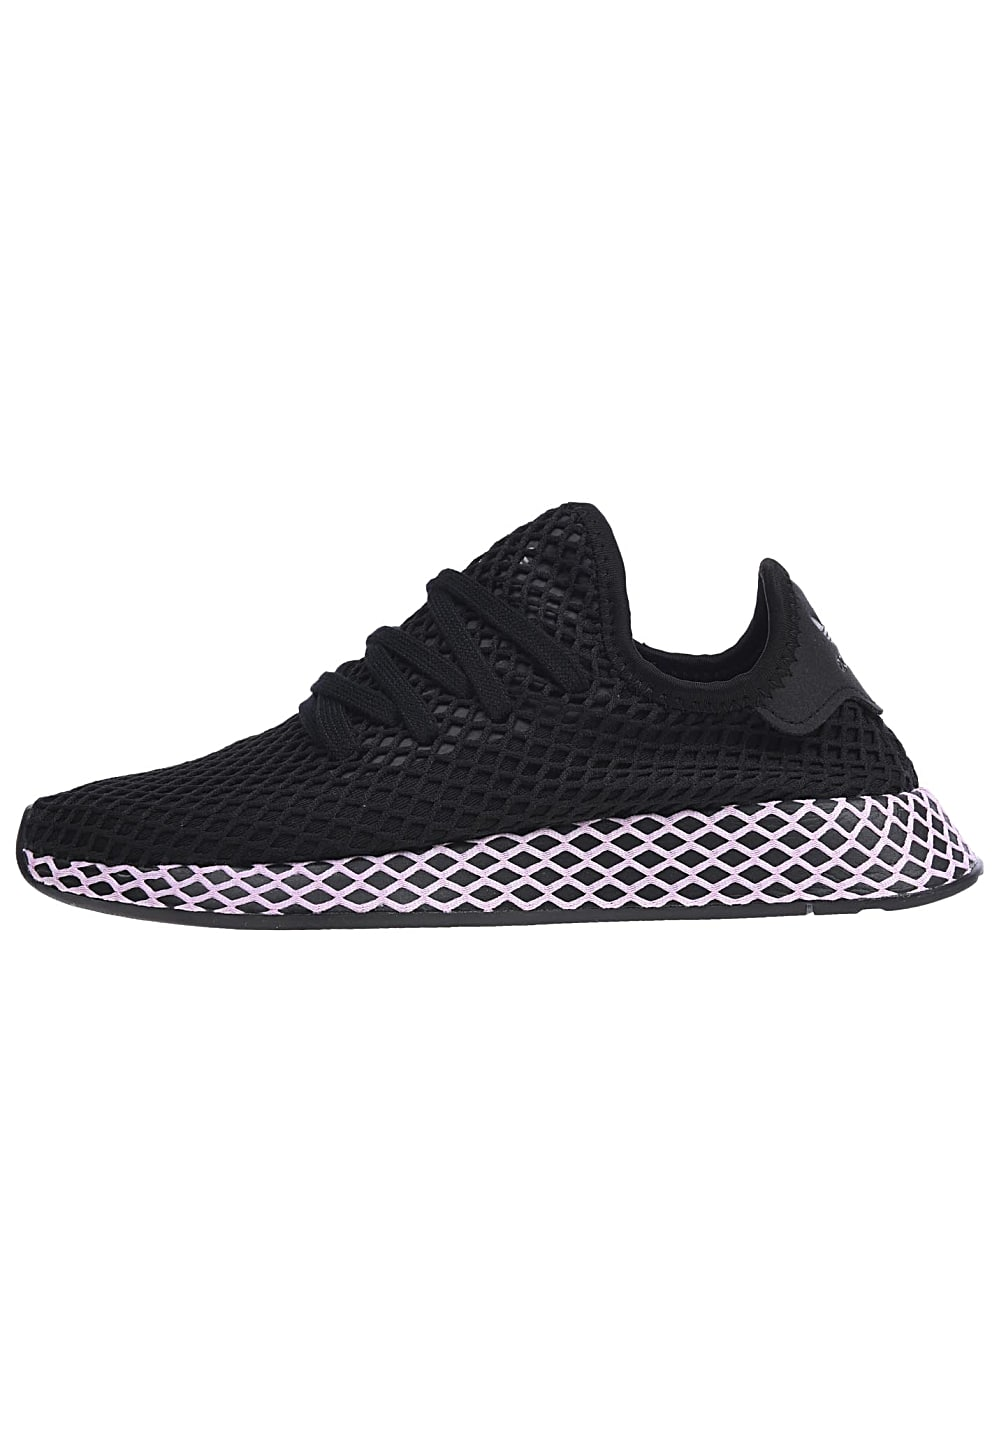 ADIDAS ORIGINALS Deerupt - Sneakers for Women - Black